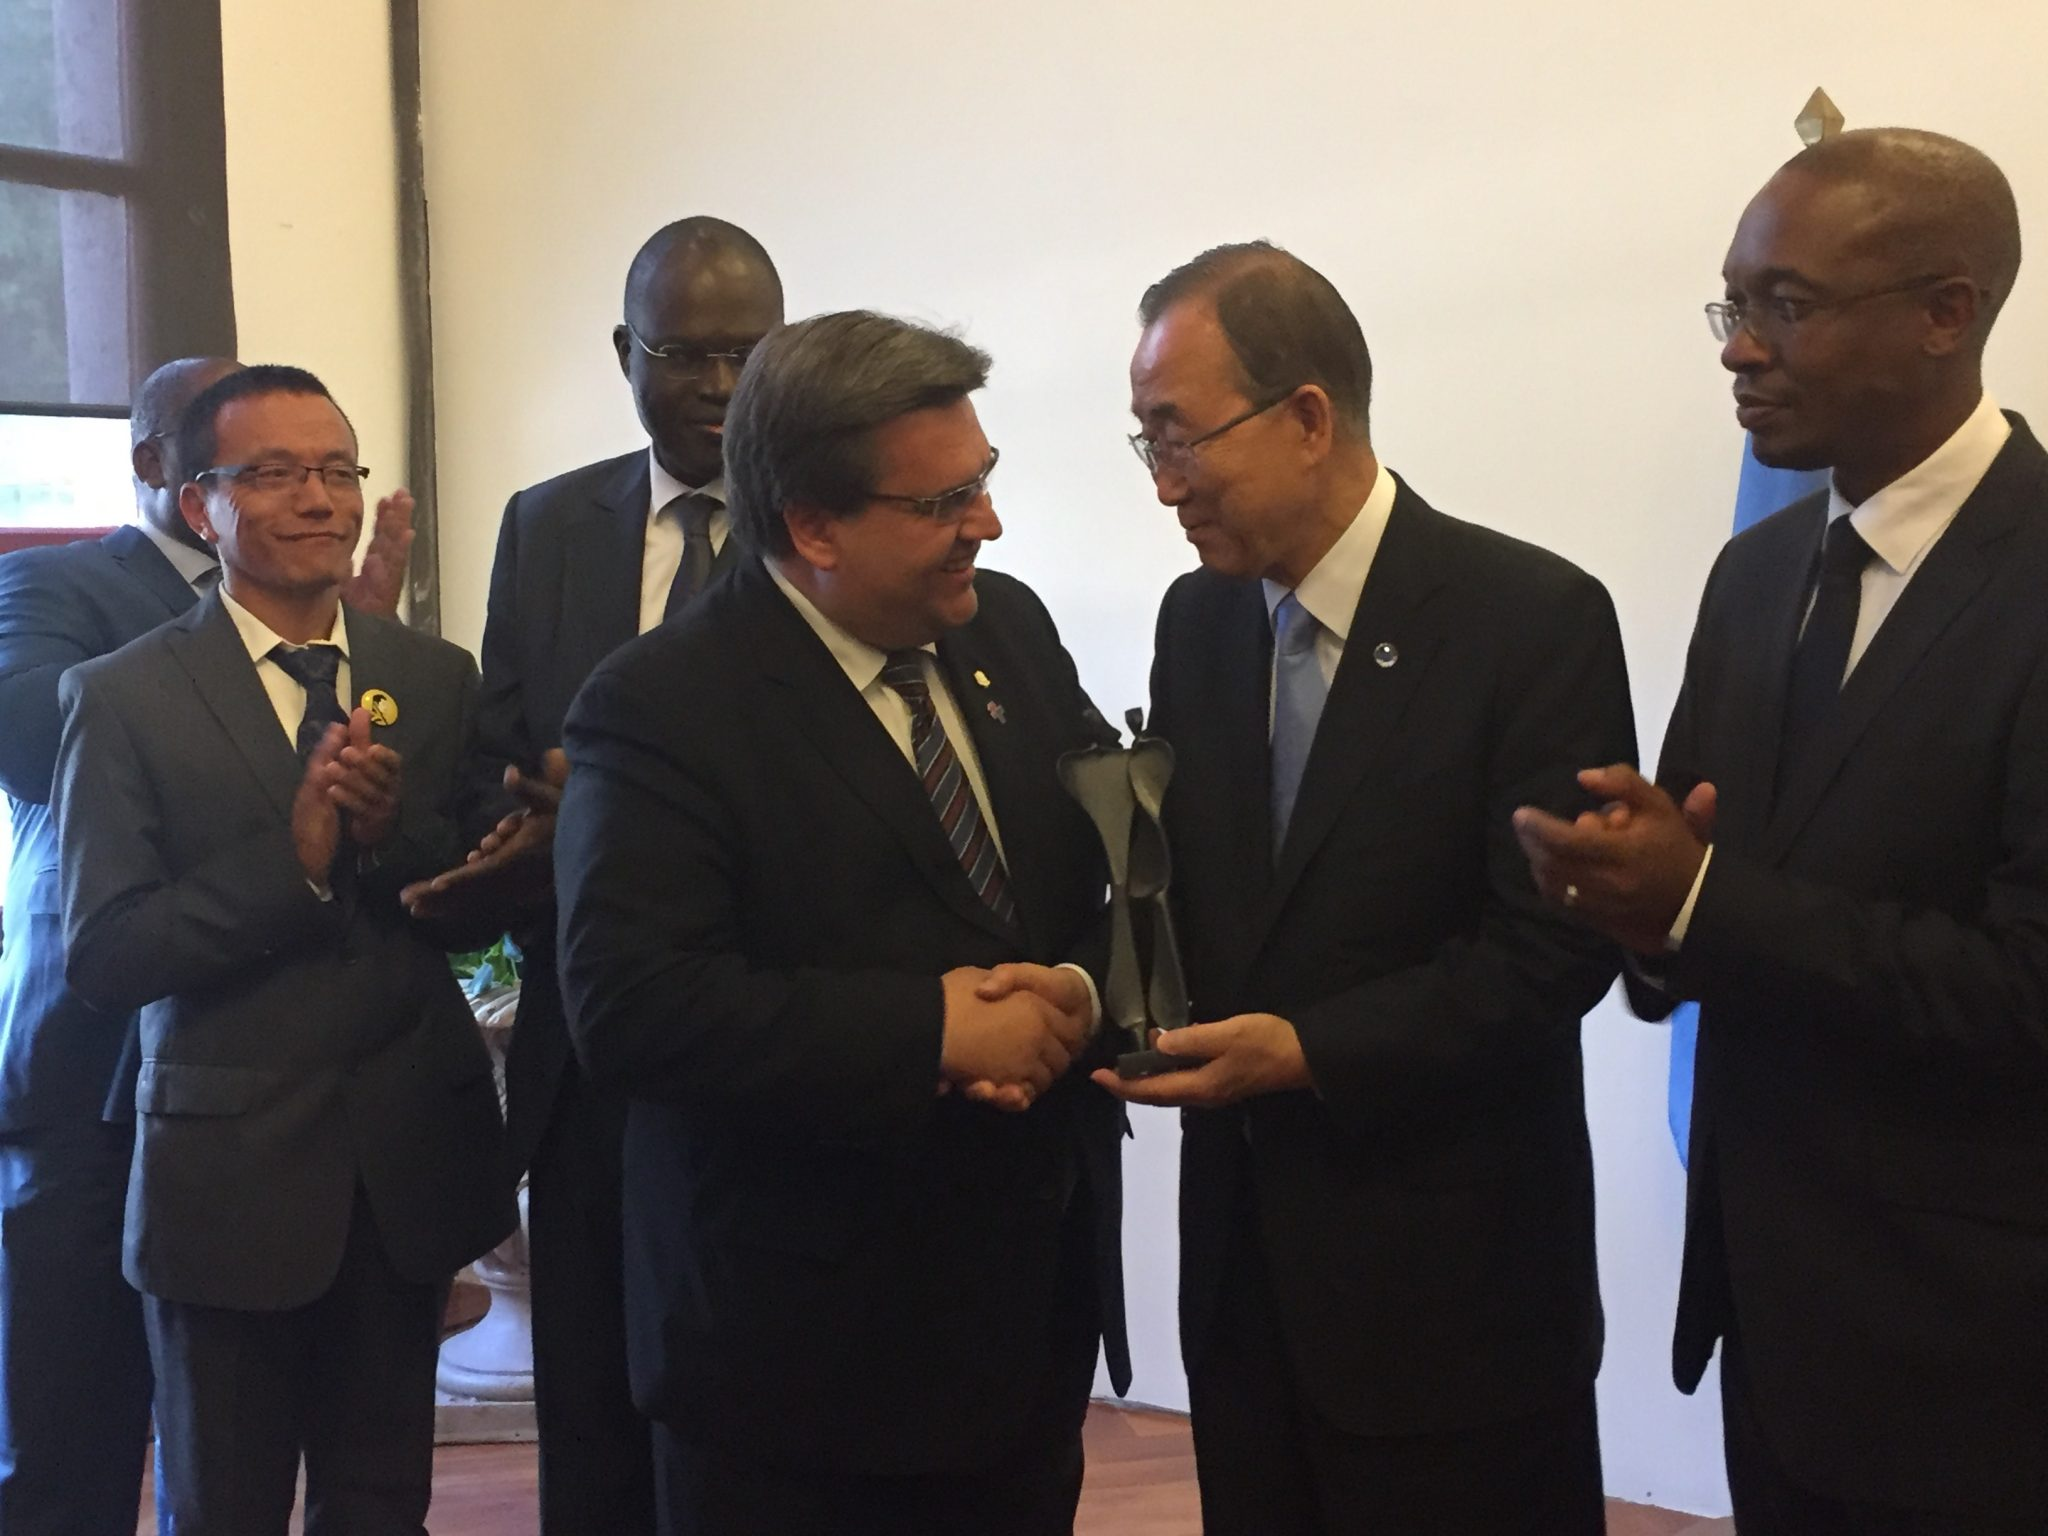 Photo: Ban Ki-moon receives a gift from Mayor Denis Coderre of Montreal.